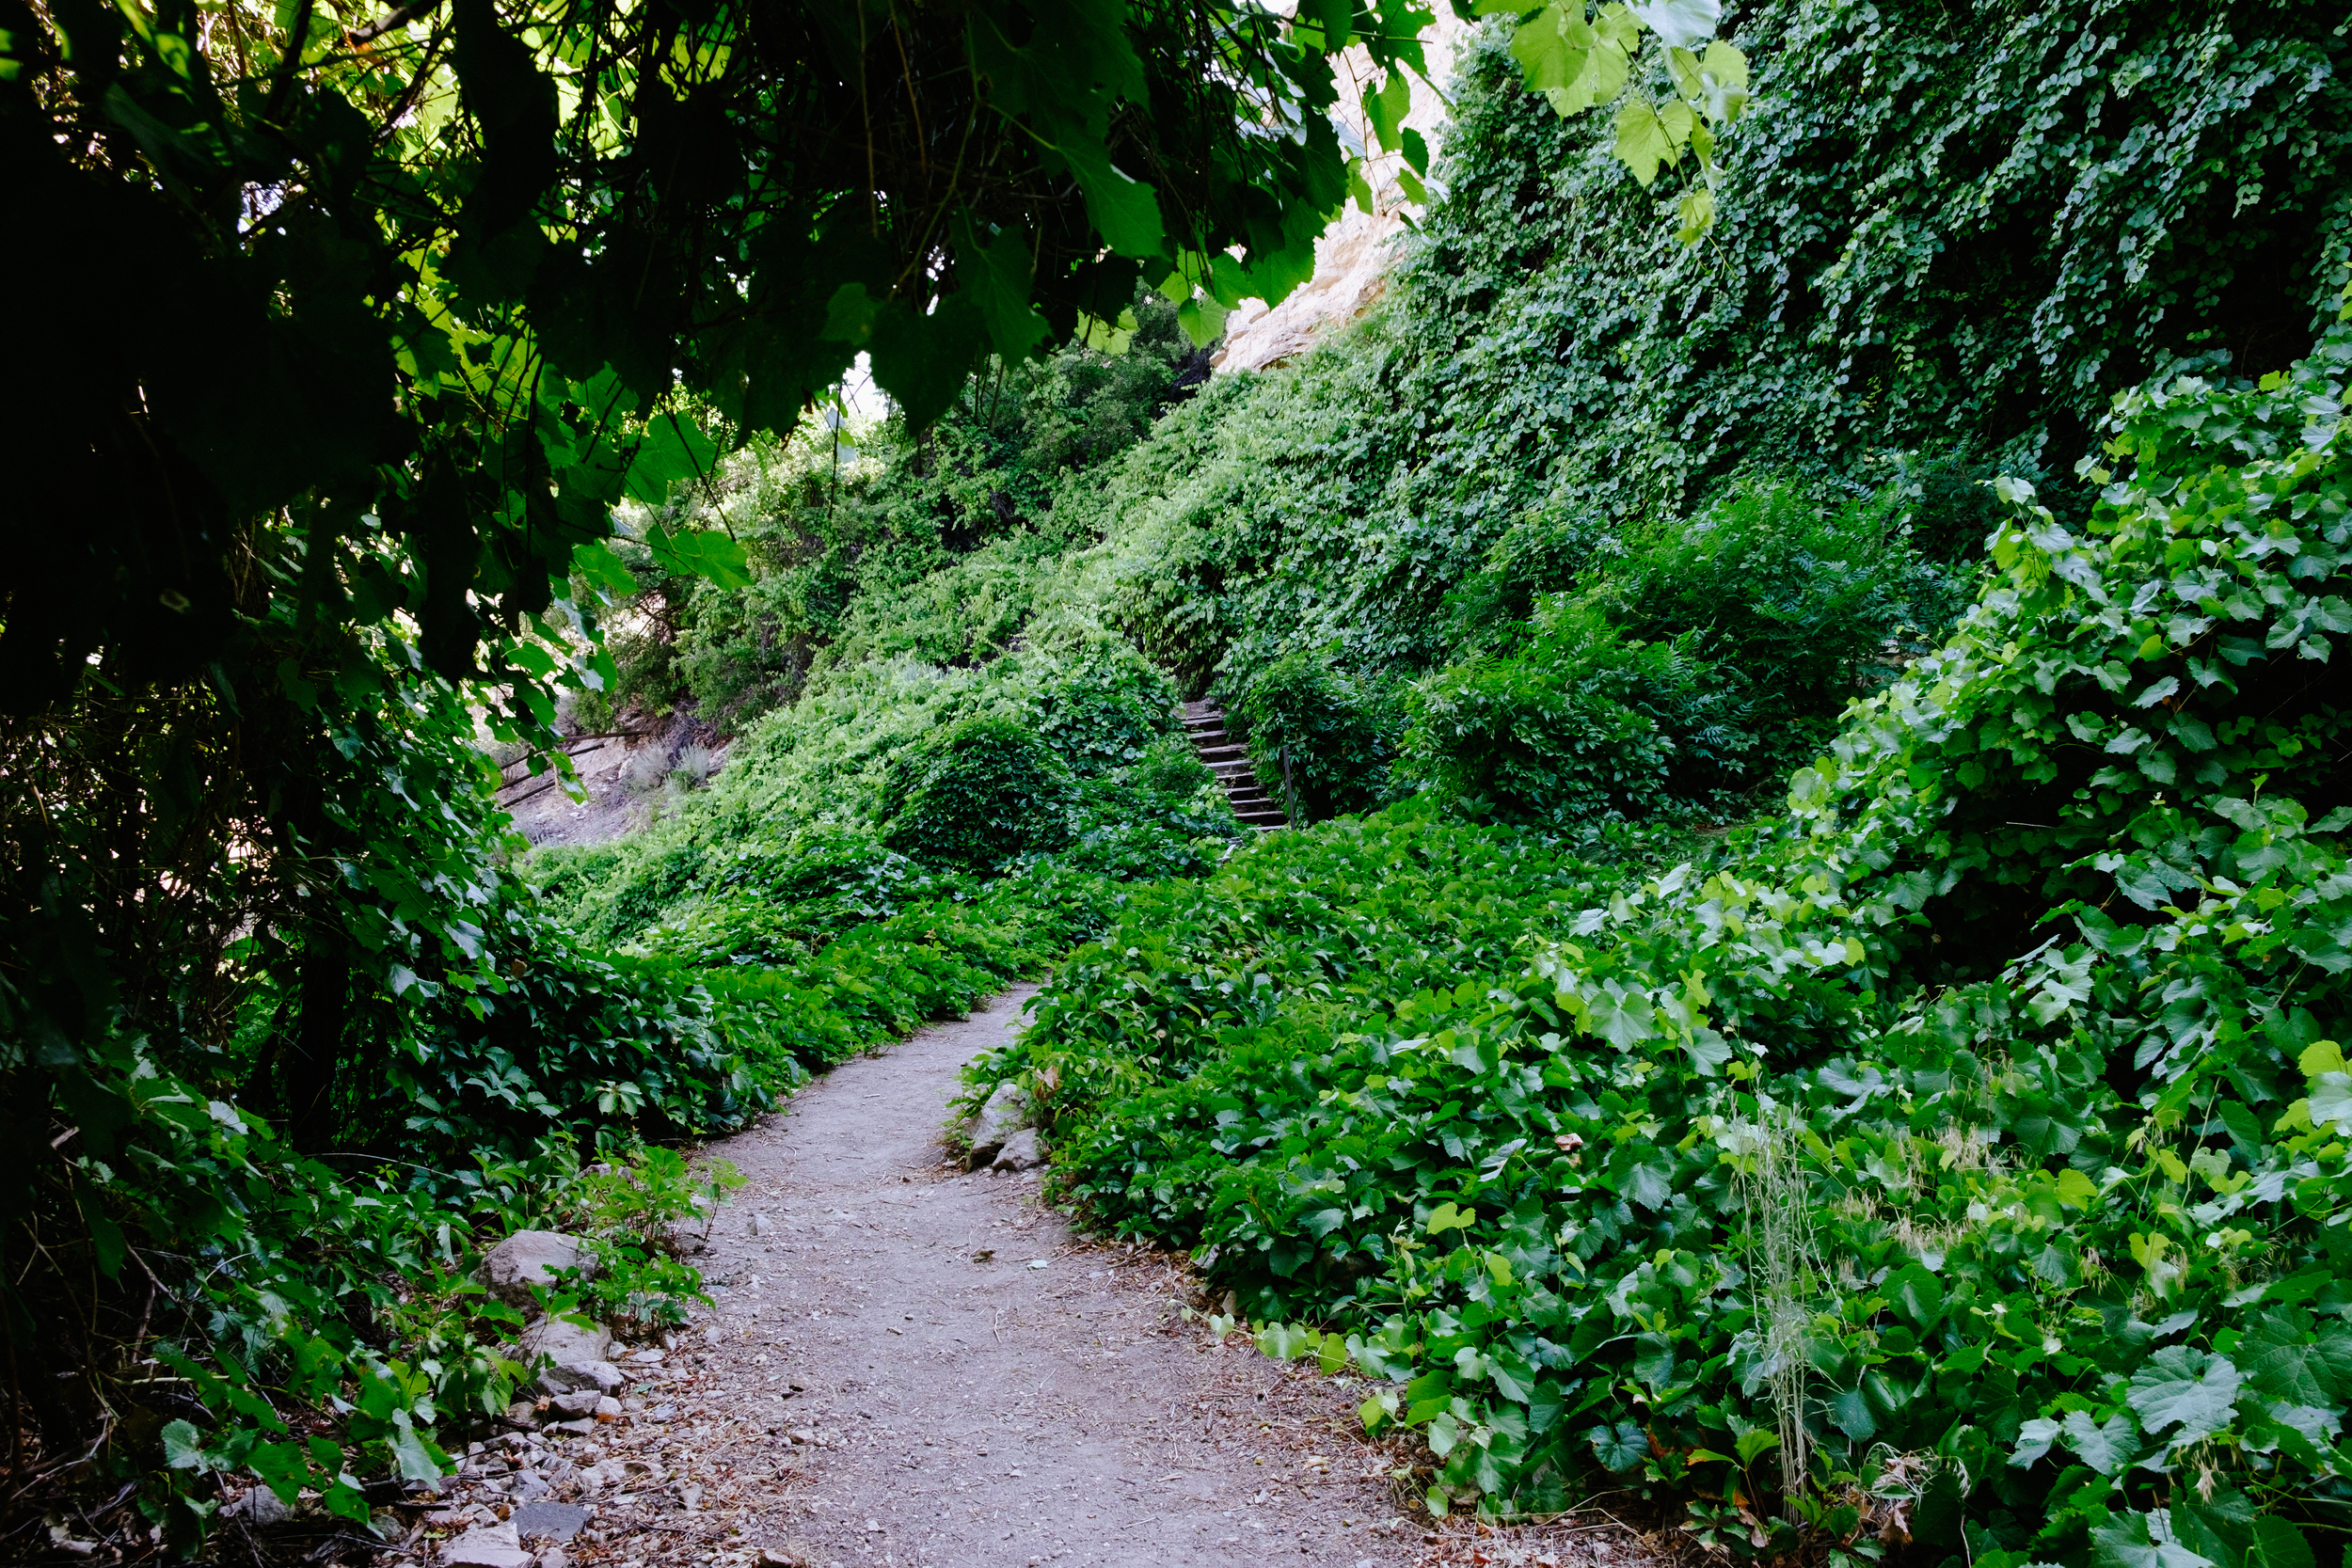 Lush green paths are carved out creating an awaises in the arid desert